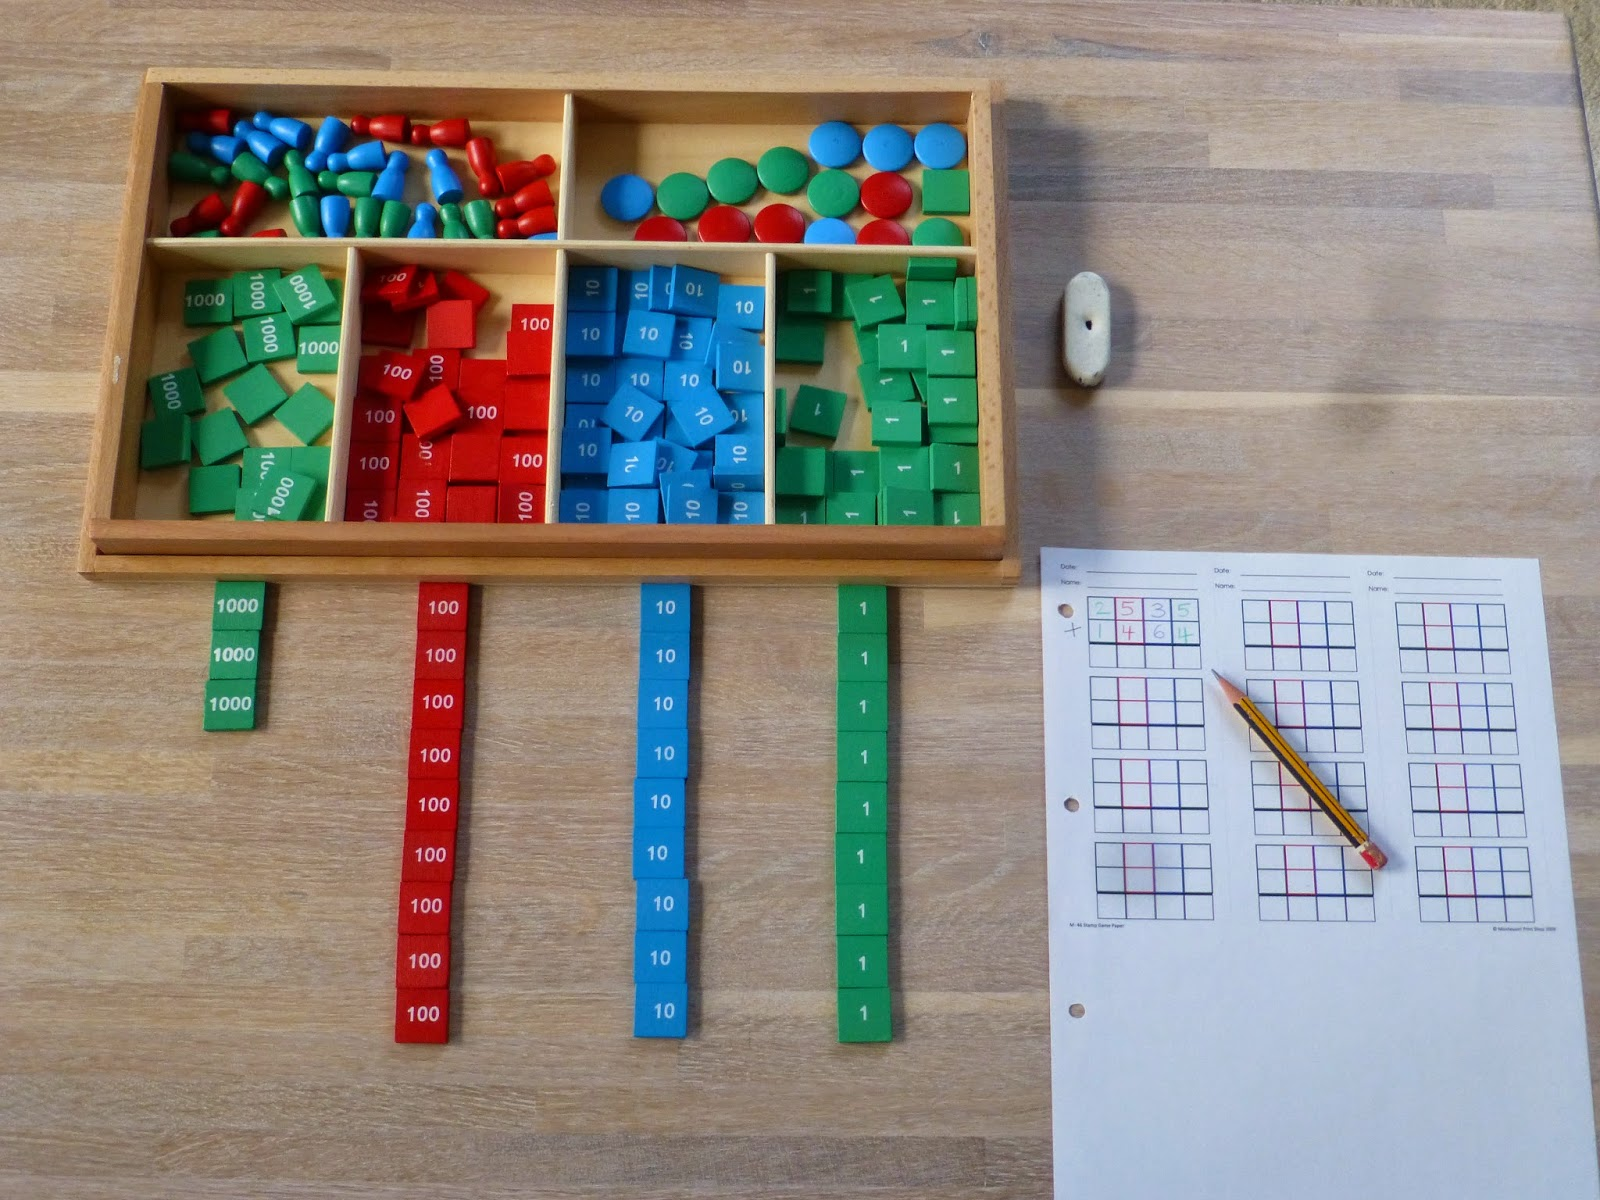 math worksheet : addition snake game worksheets  montessori material the snake  : Dynamic Maths Worksheets